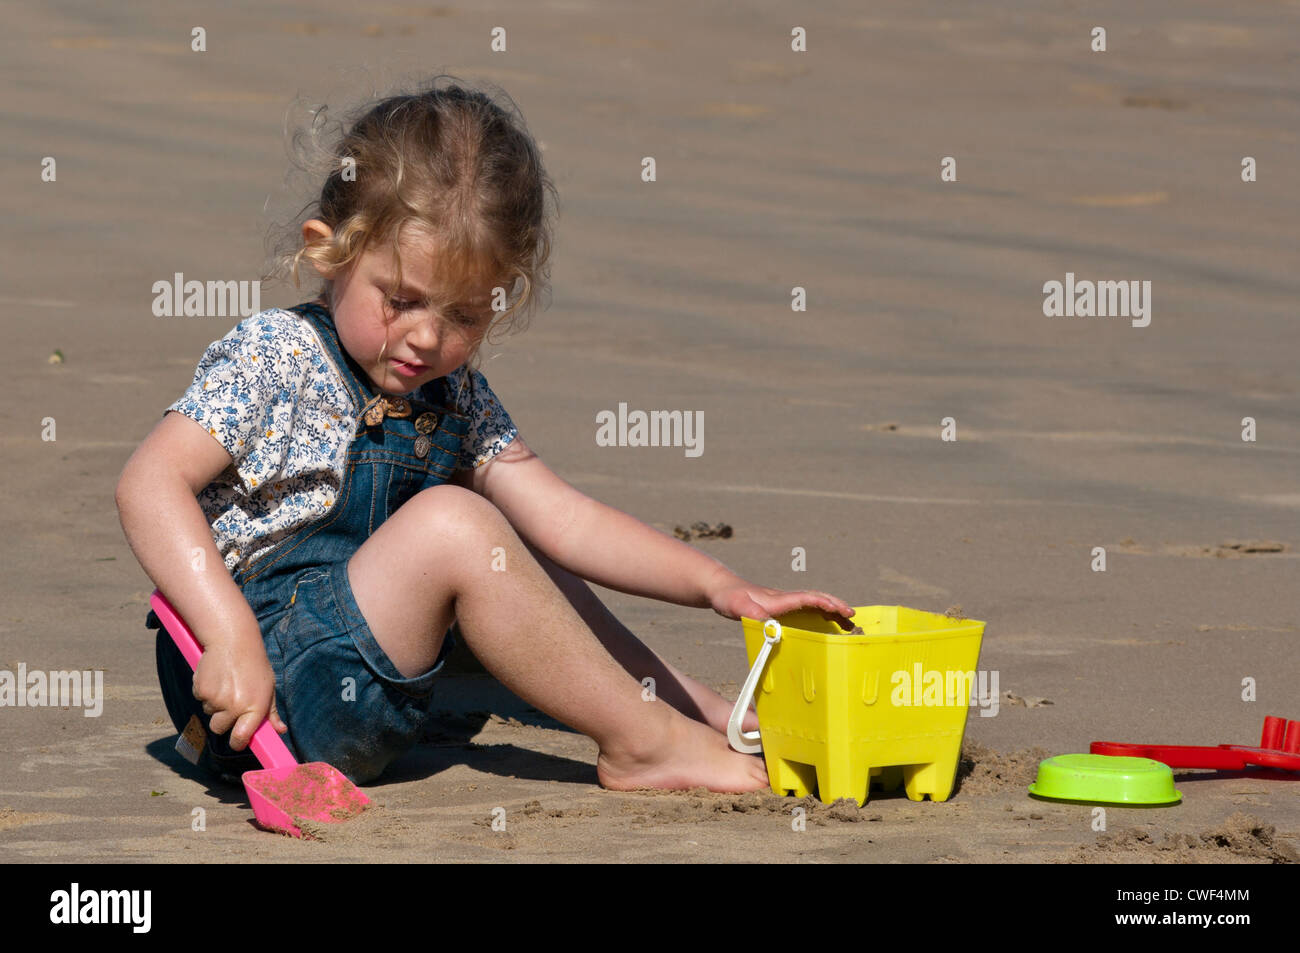 lovely girl playing on beach stockfotos lovely girl playing on beach bilder alamy. Black Bedroom Furniture Sets. Home Design Ideas